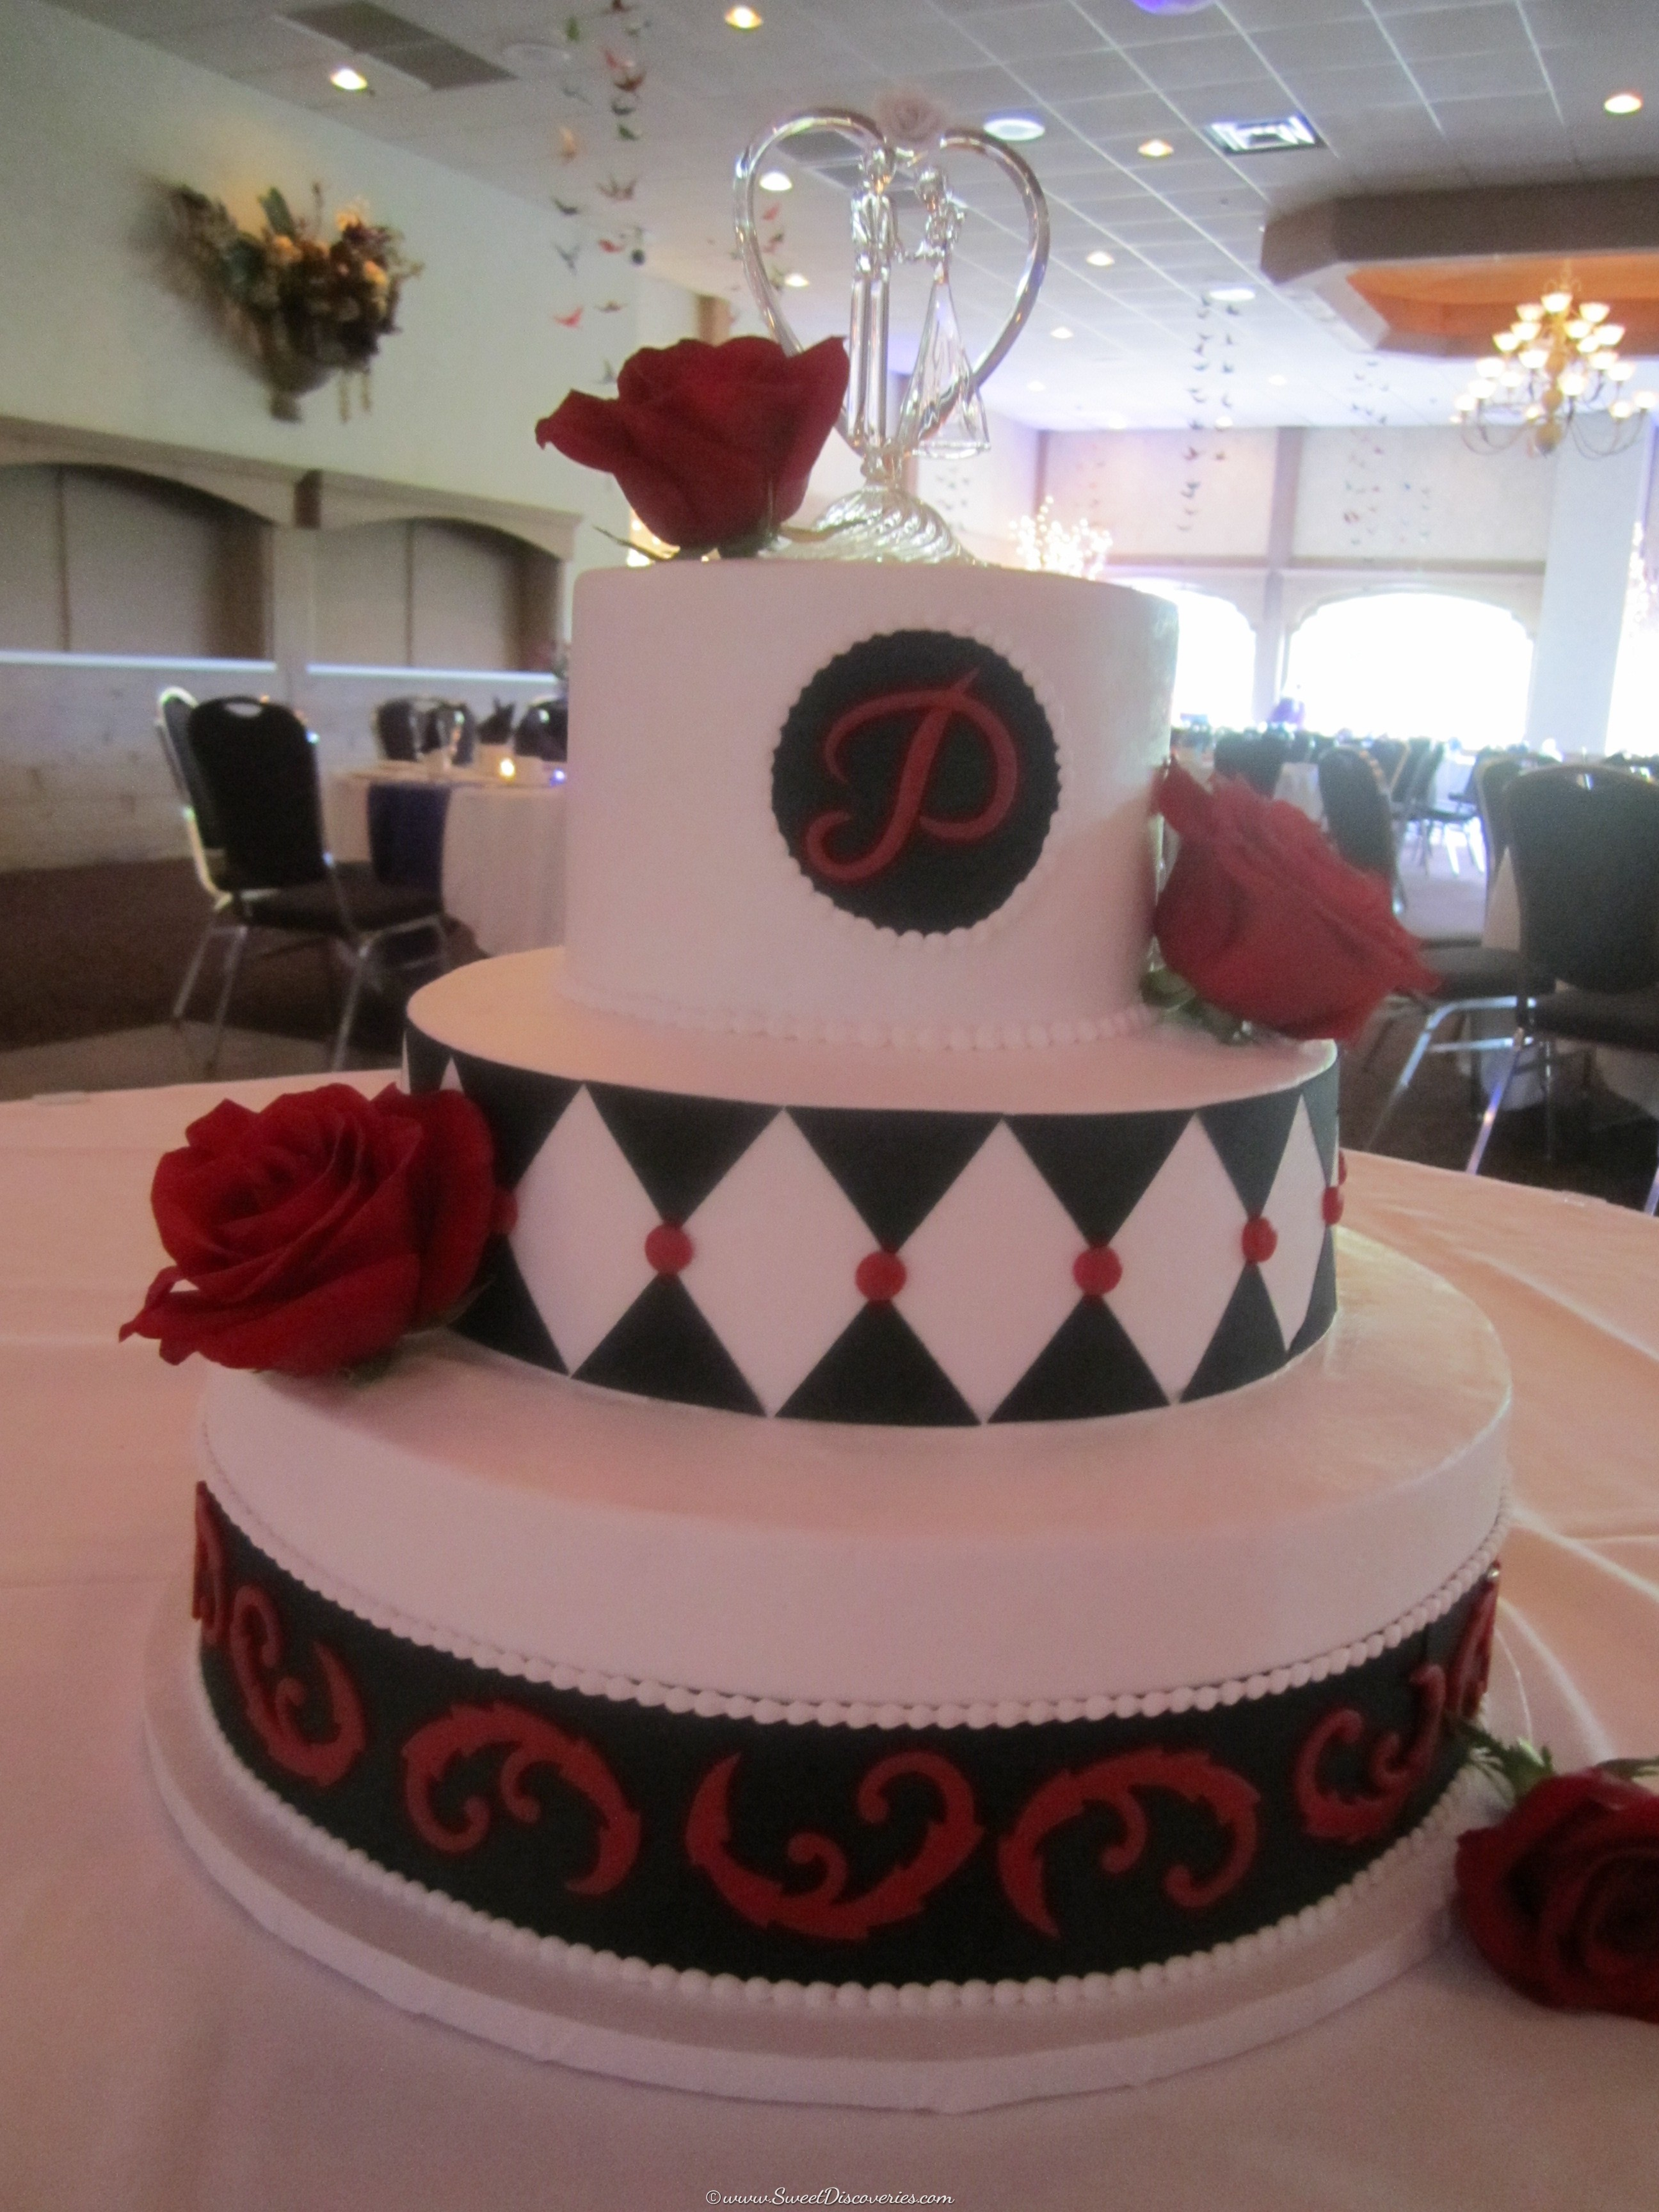 Alice in Wonderland Inspired Wedding Cake | Sweet Discoveries